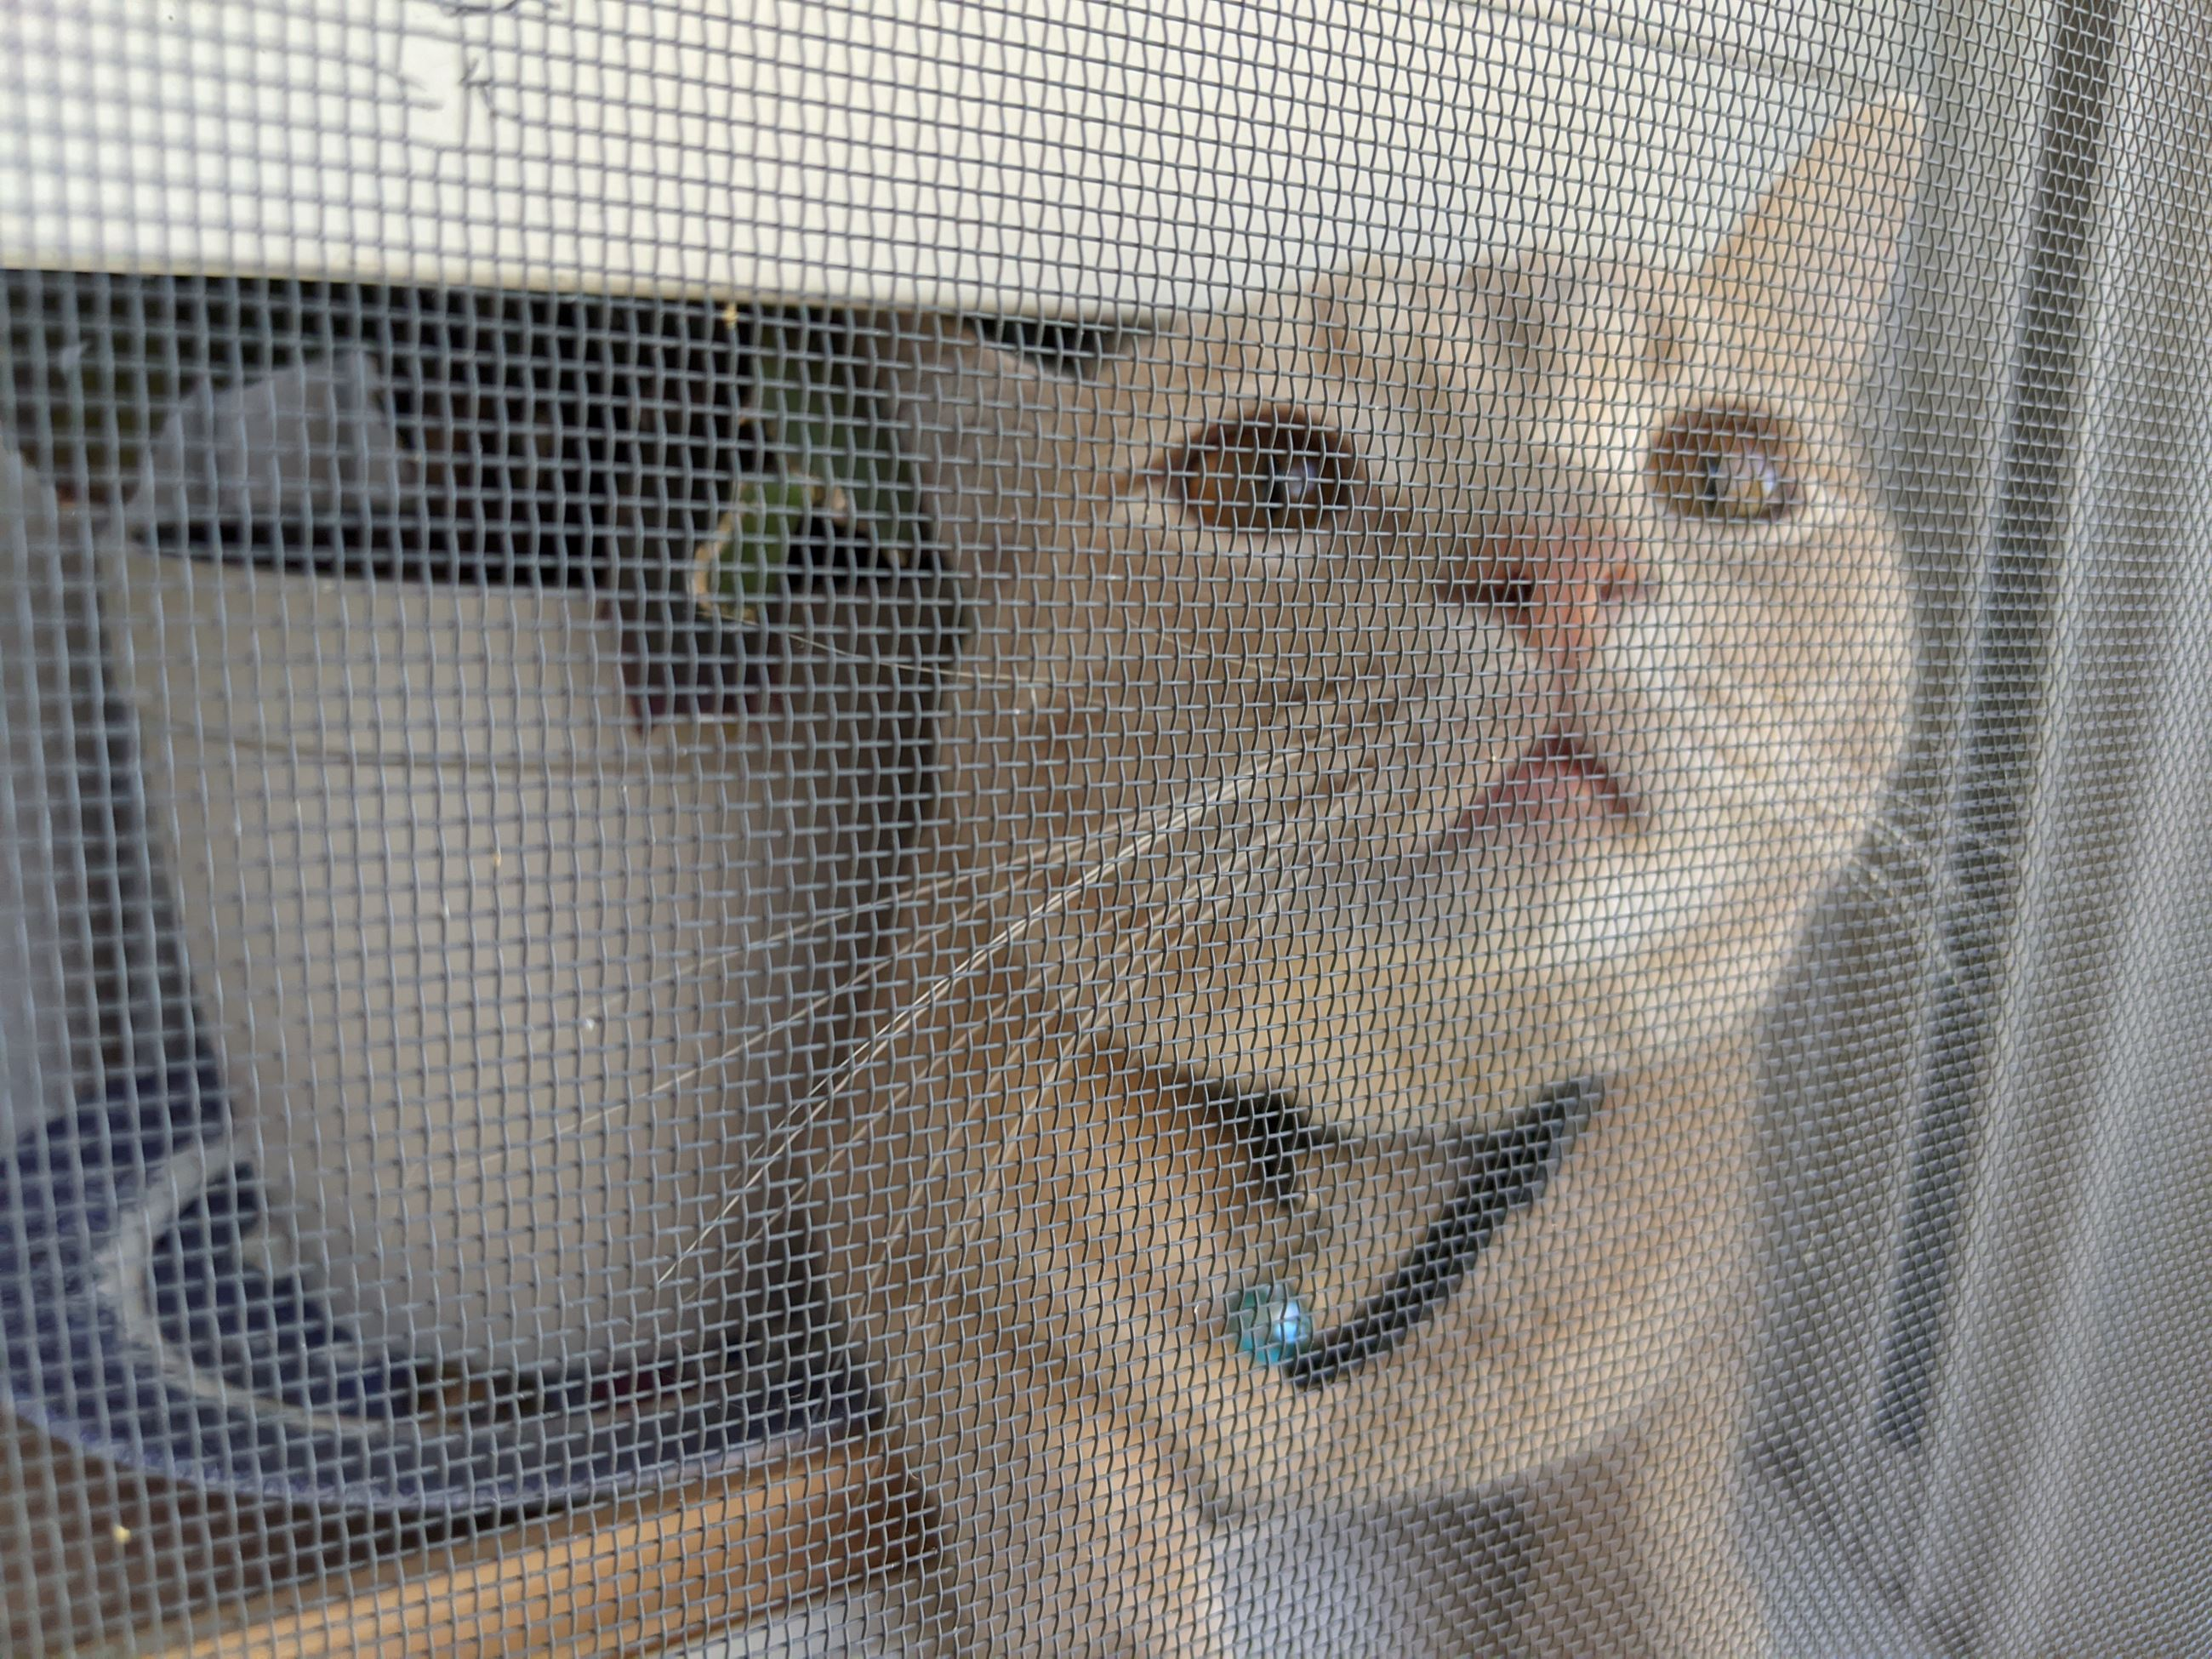 Short haired orange tabby sniffing the great outdoors through a window screen